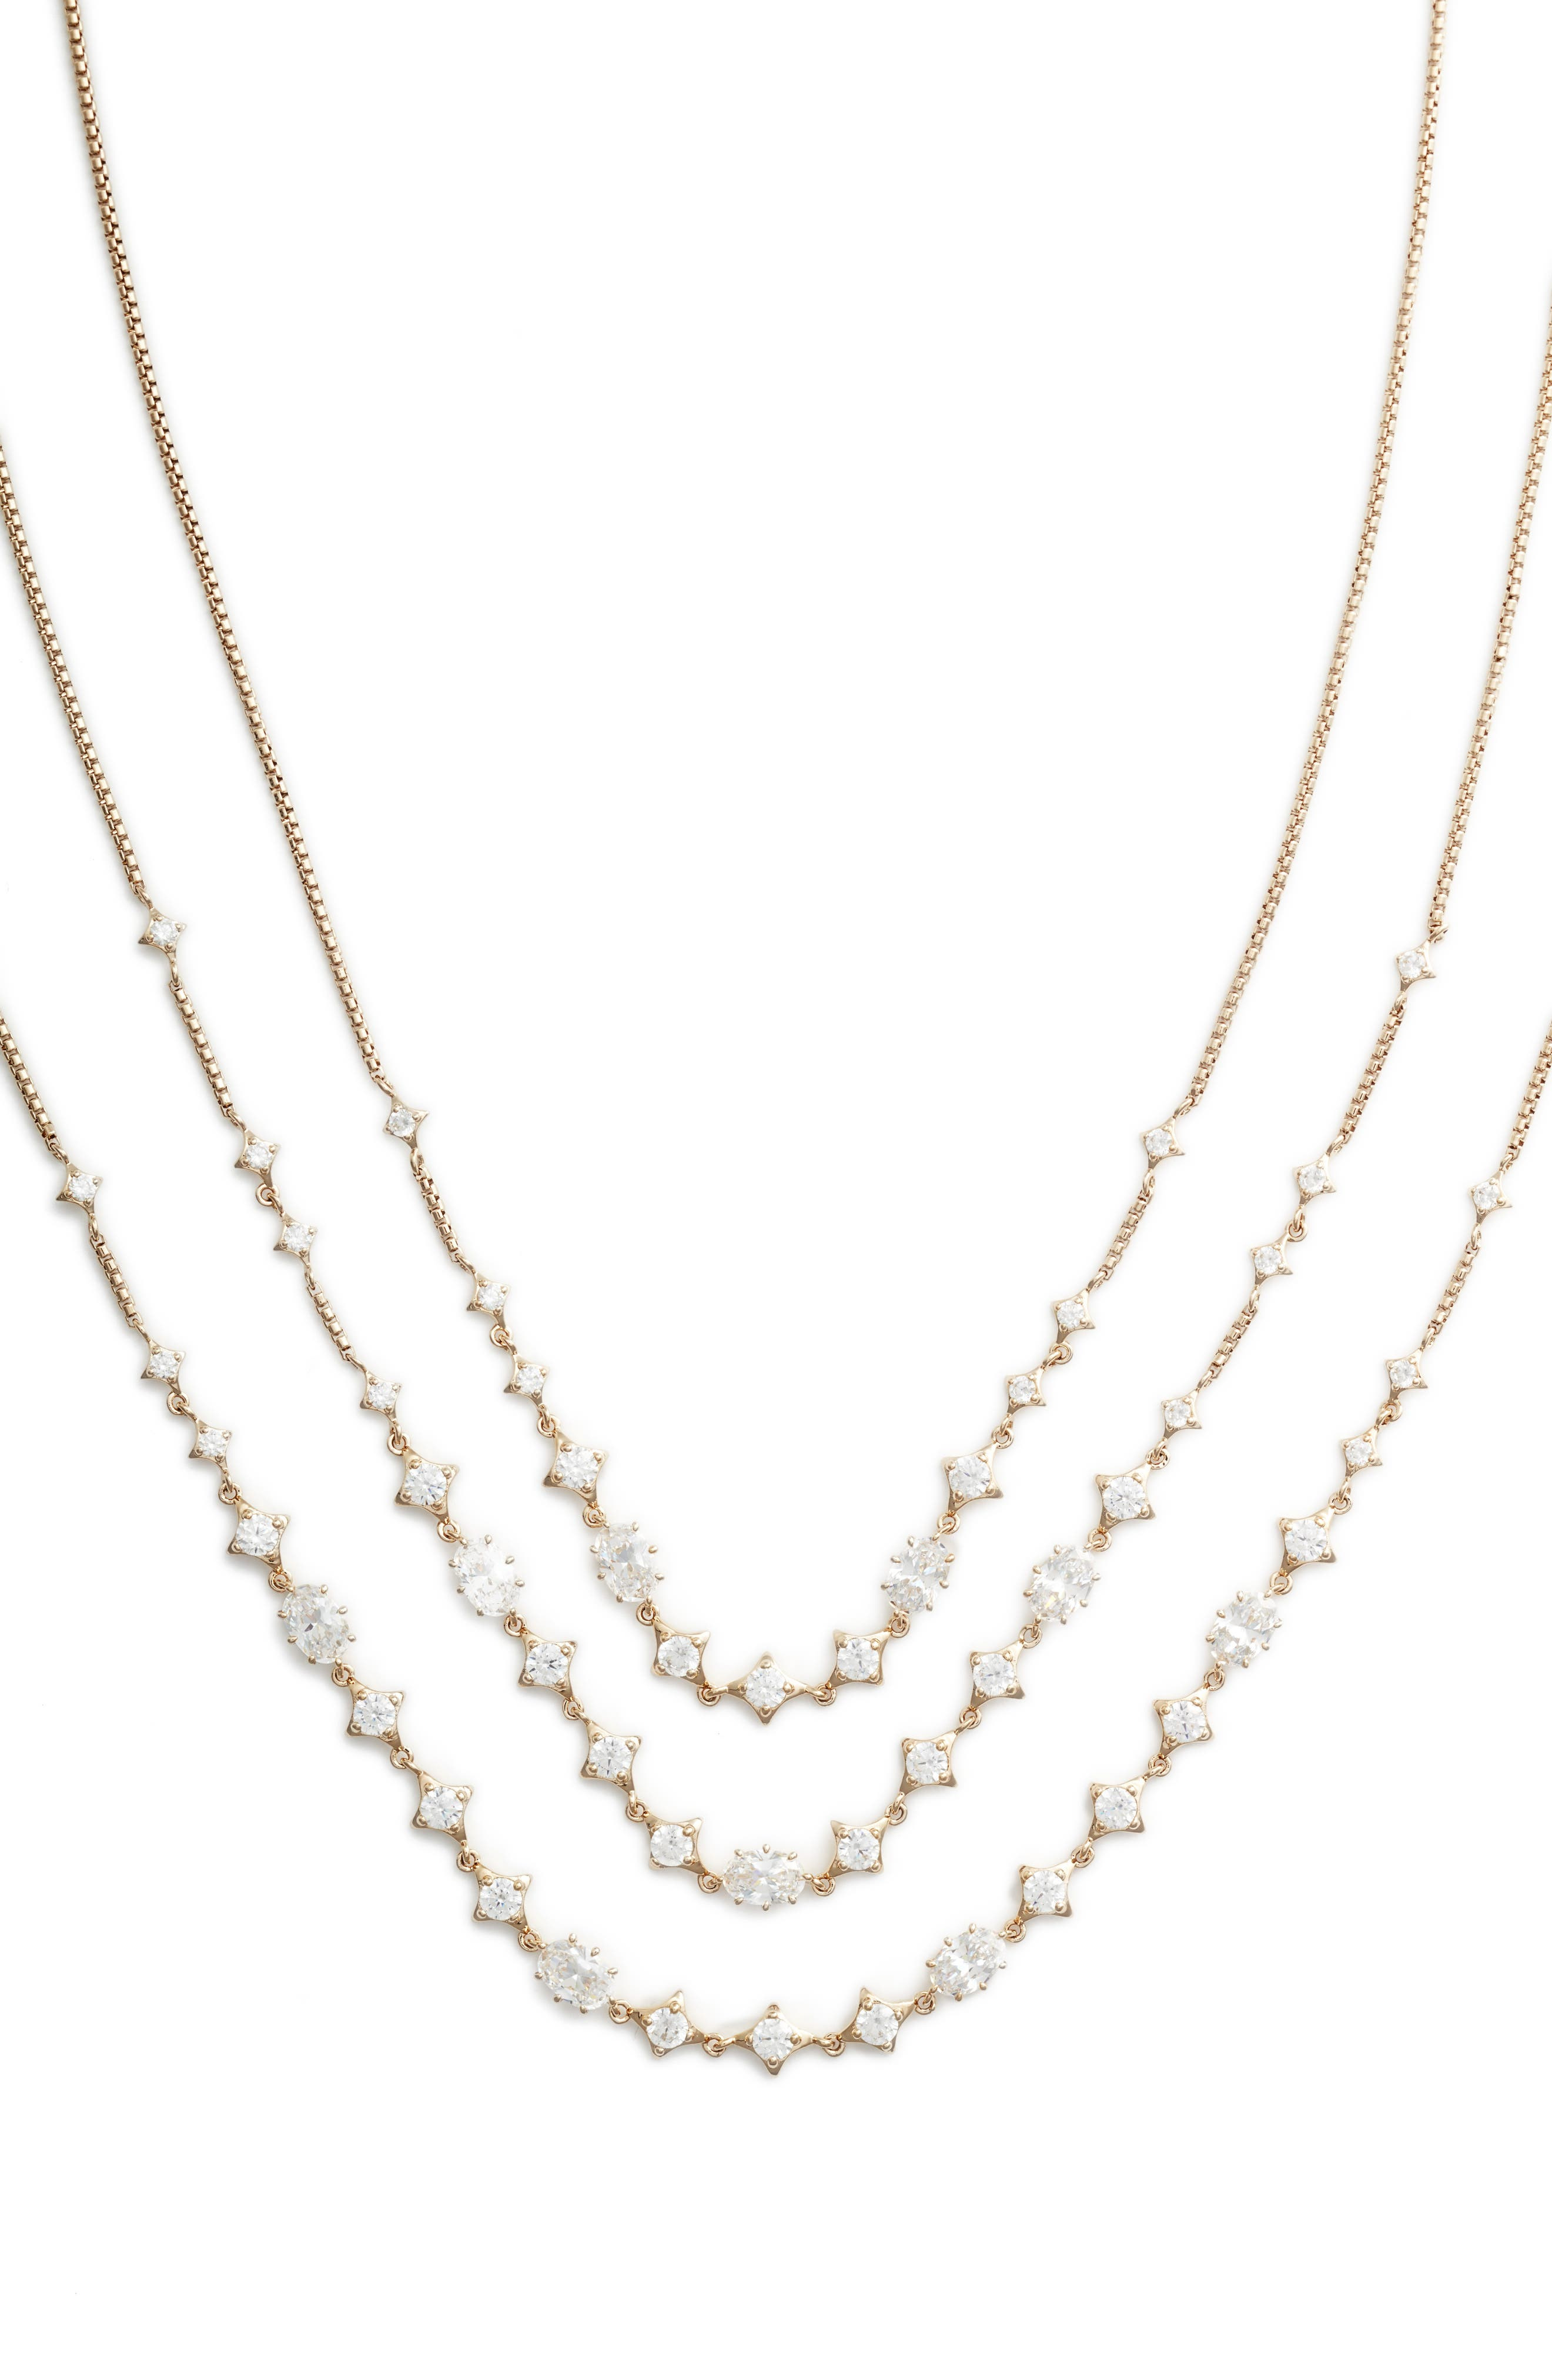 Boho Layered Necklace,                             Alternate thumbnail 2, color,                             GOLD/ CLEAR